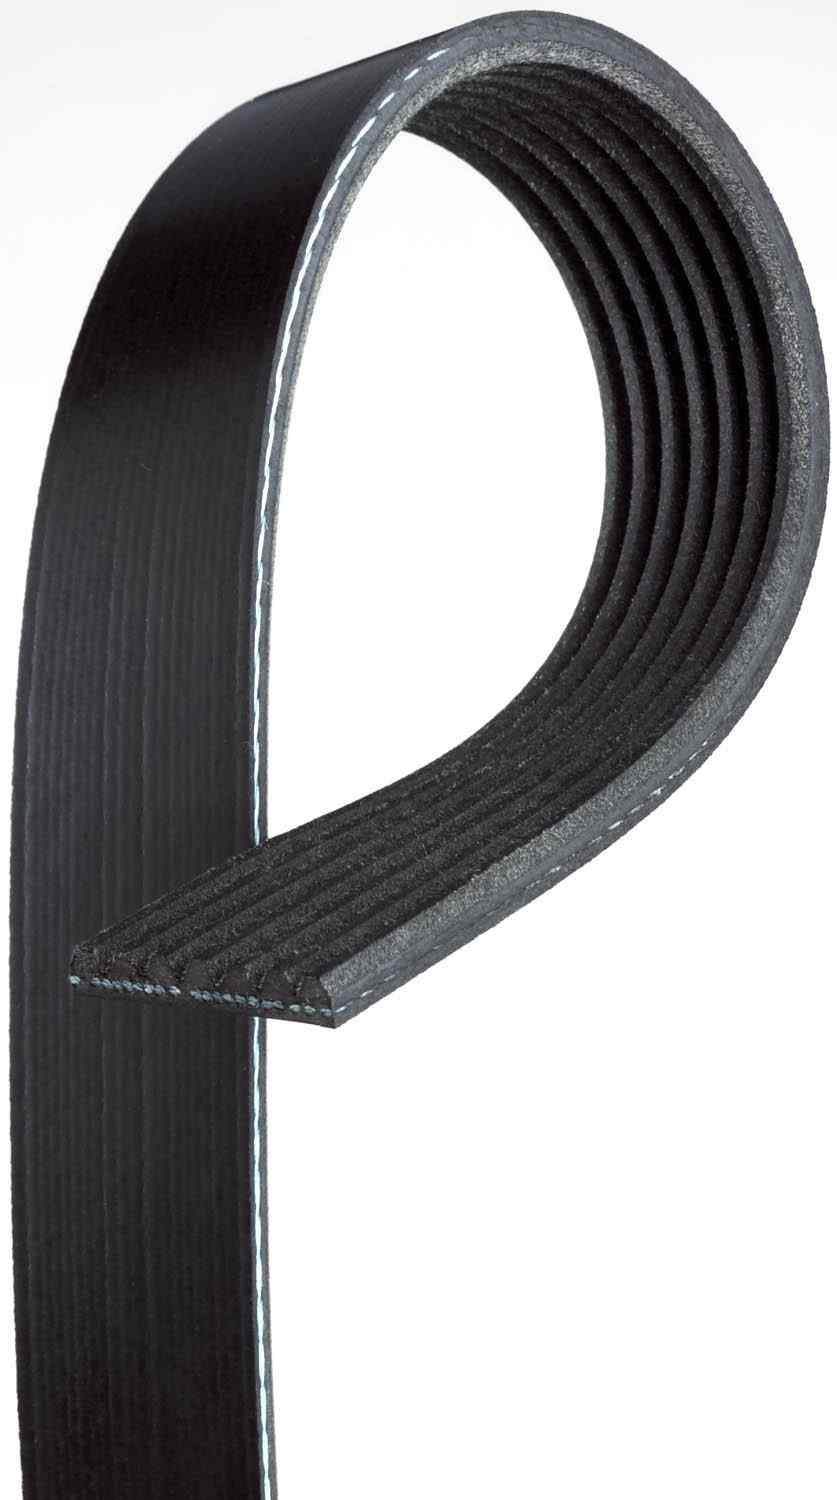 GATES - Micro-V AT Premium OE V-Ribbed Belt - GAT K070680